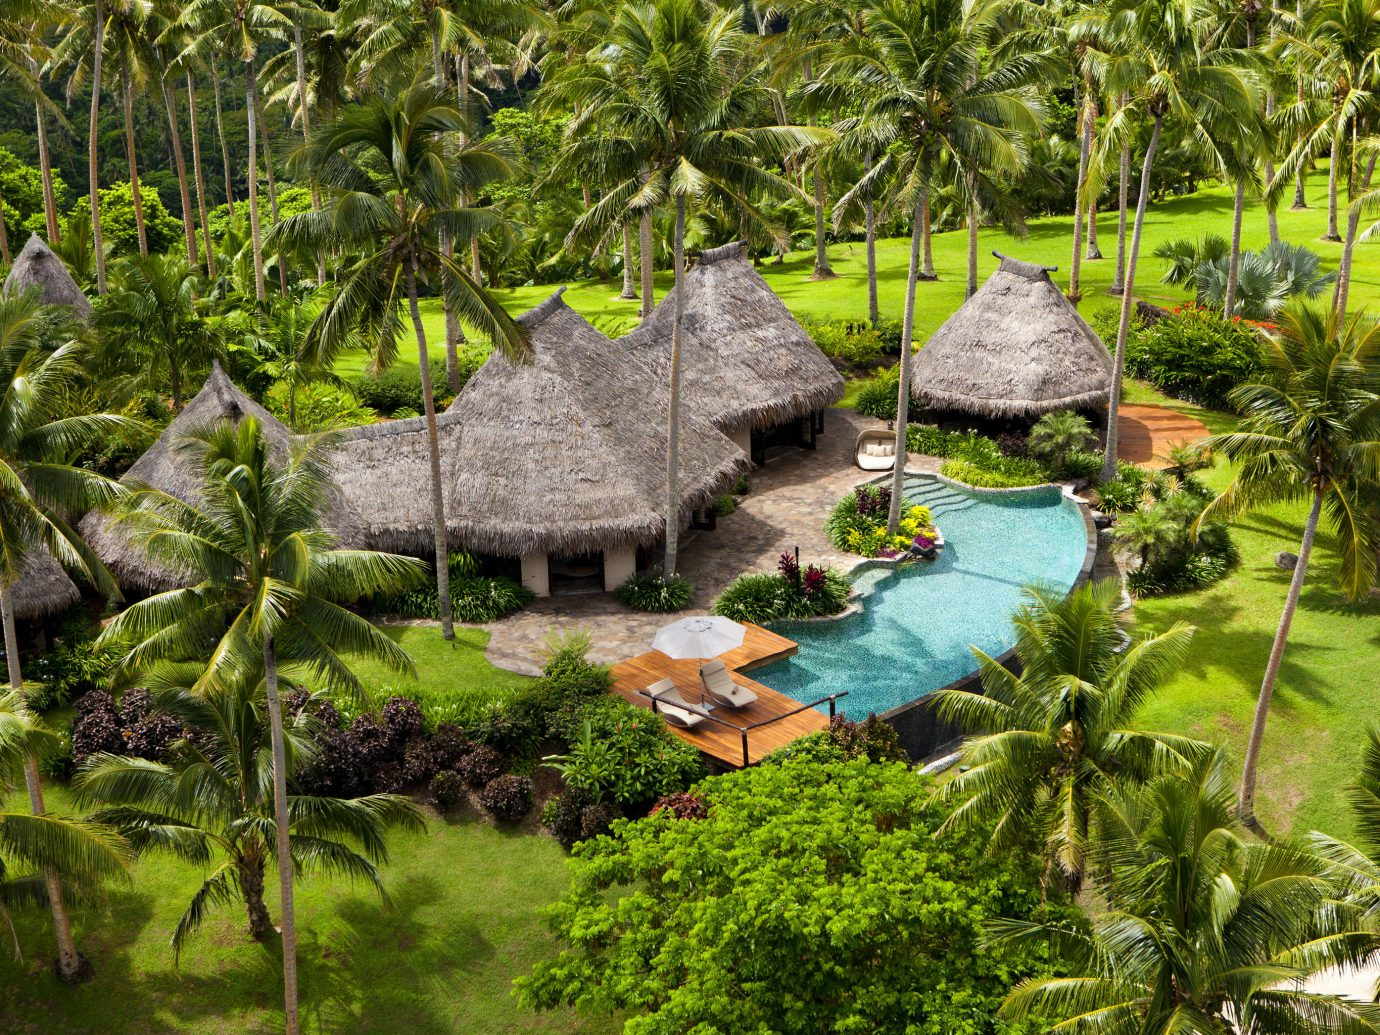 All-Inclusive Resorts Boutique Hotels Hotels Romance tree outdoor archaeological site botany Jungle rainforest Garden Resort tropics Forest Nature botanical garden flower plant agriculture pond area surrounded lush wooded